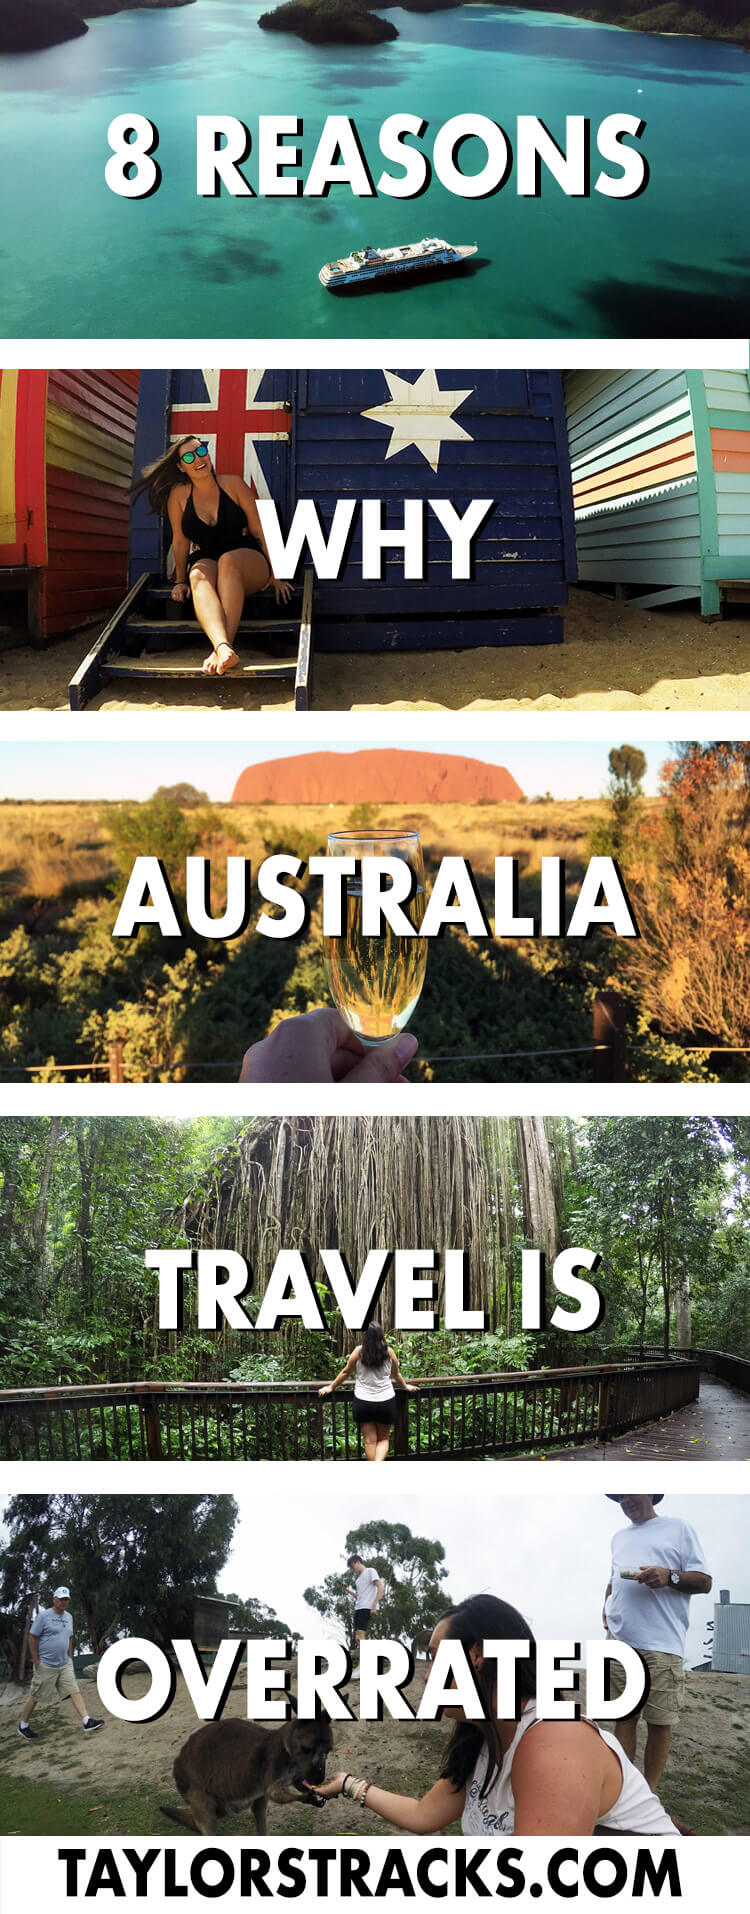 Australia travel | Australia travel tips | Uluru | Outback Australia | Whitehaven Beach | Australia beaches | Magnetic Island | Queensland | Whitsunday Islands